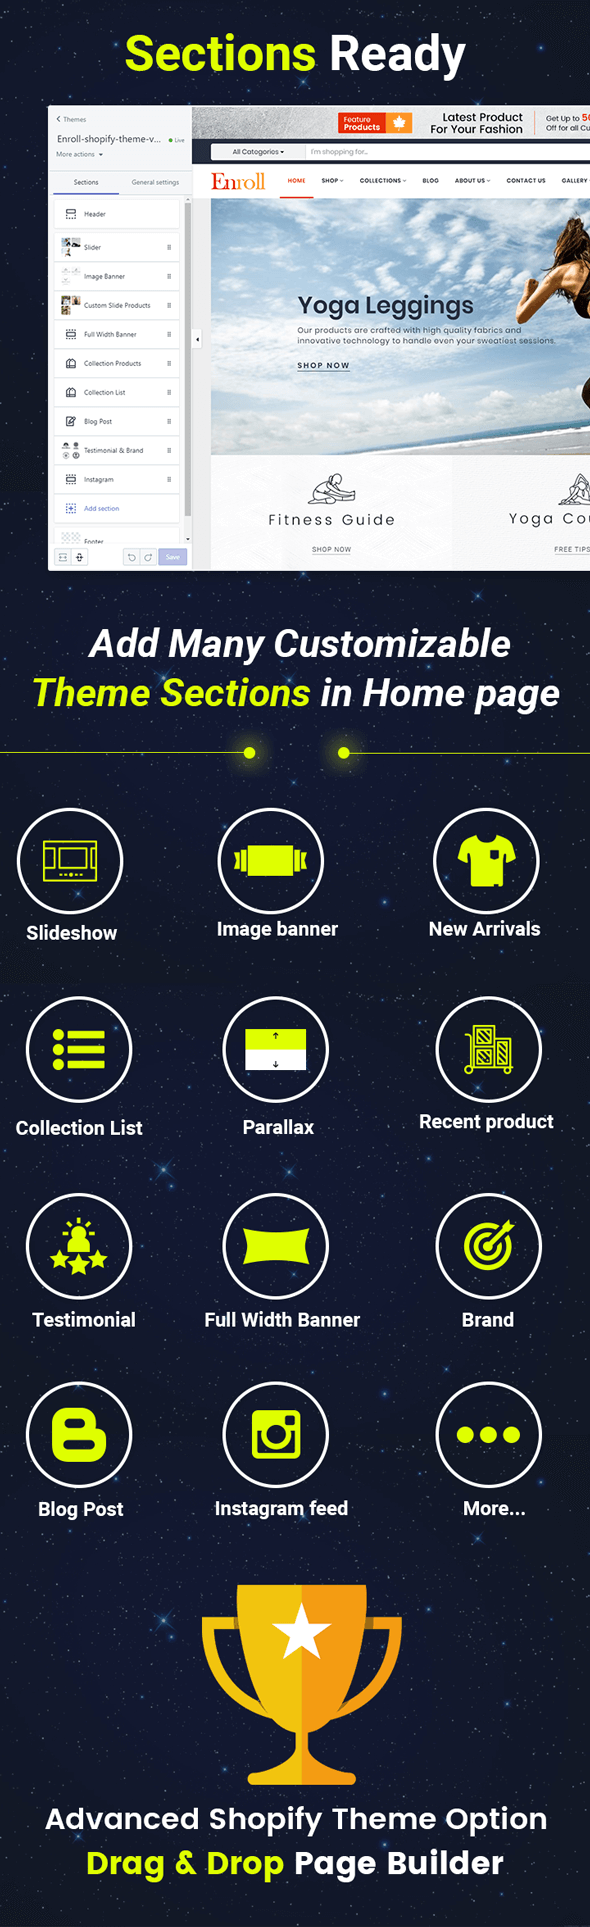 Full Theme Features